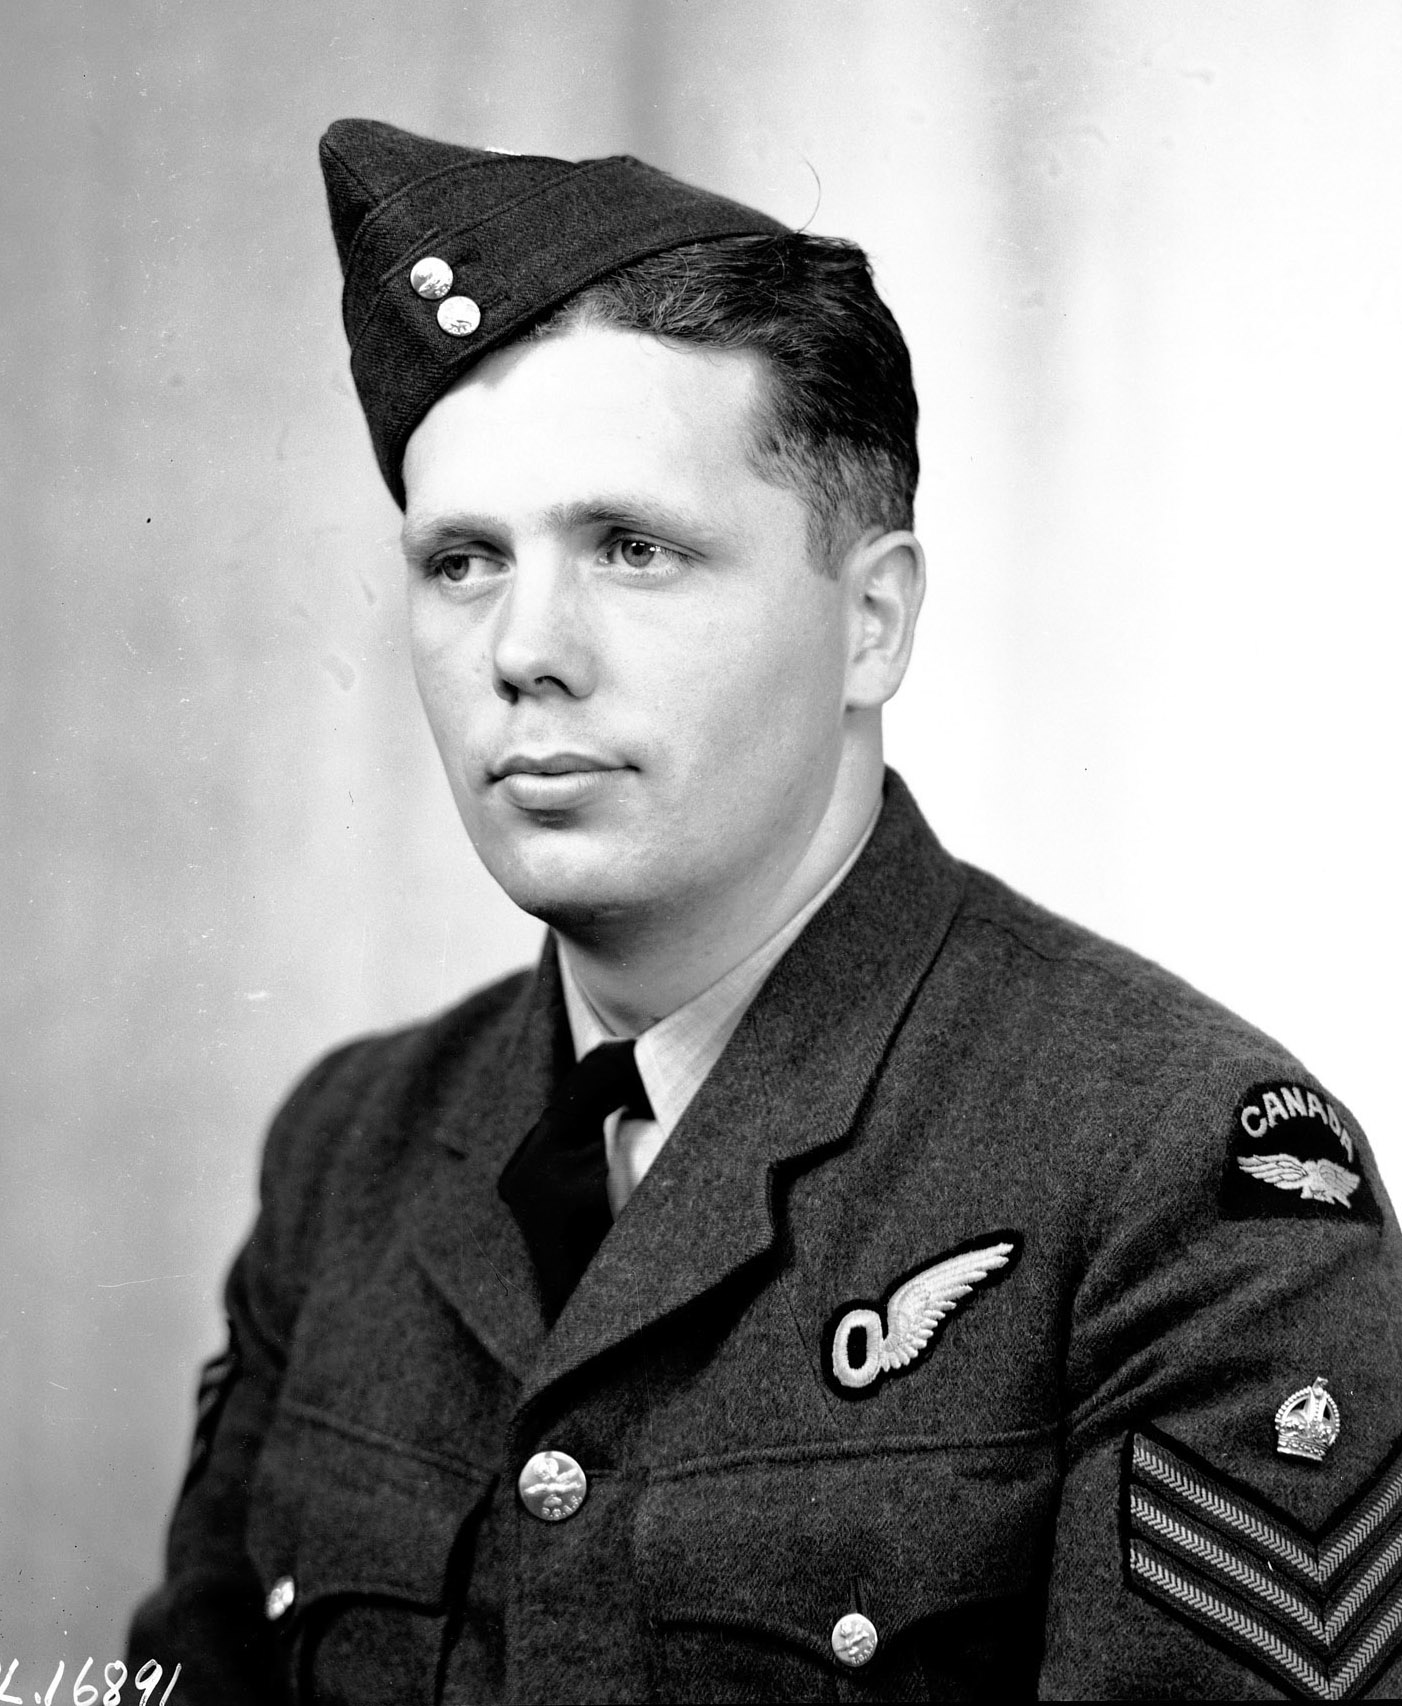 Flight Sergeant Donald A. MacLean, RCAF, was photographed in London, England, shortly after the Dambusters raid. PHOTO: DND Archives, PL-16891